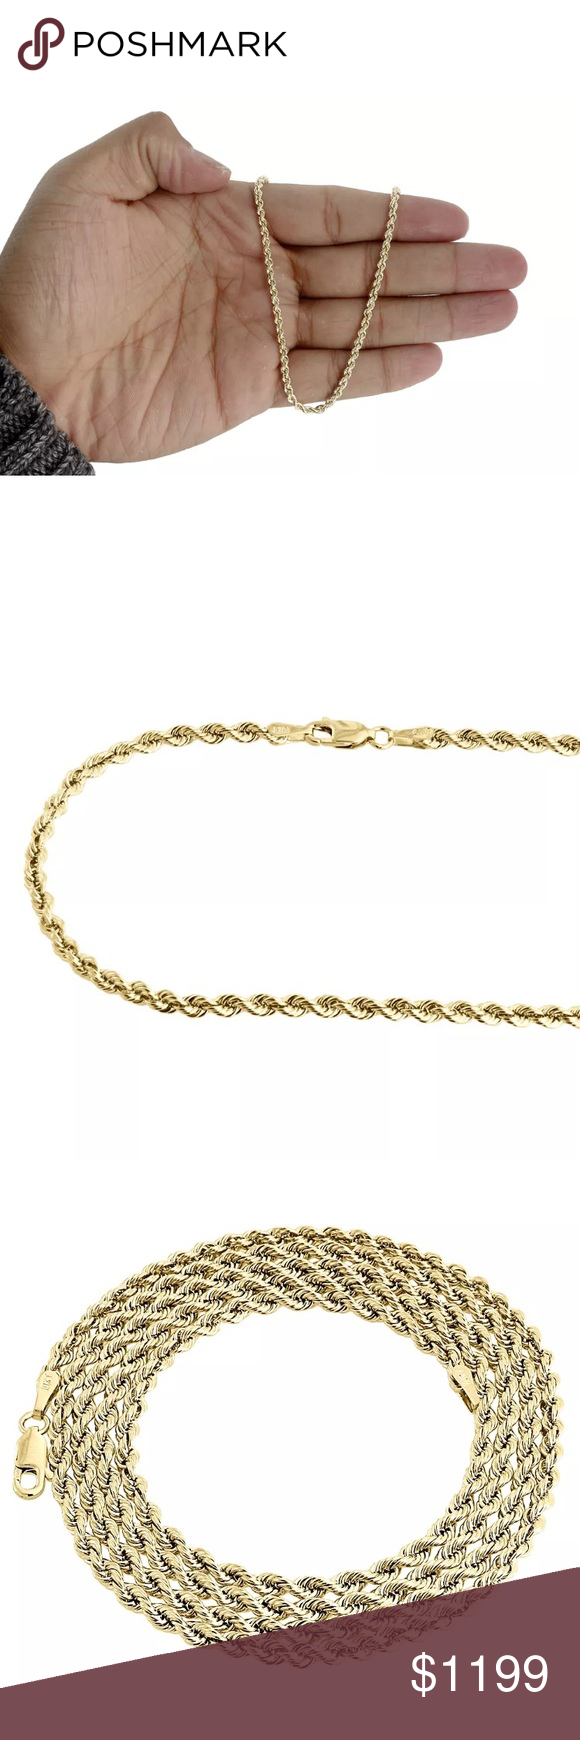 Real Heavy Solid Gold 26 Rope Chain 2mm Necklace Gold Rope Chains Rope Chain Solid Gold